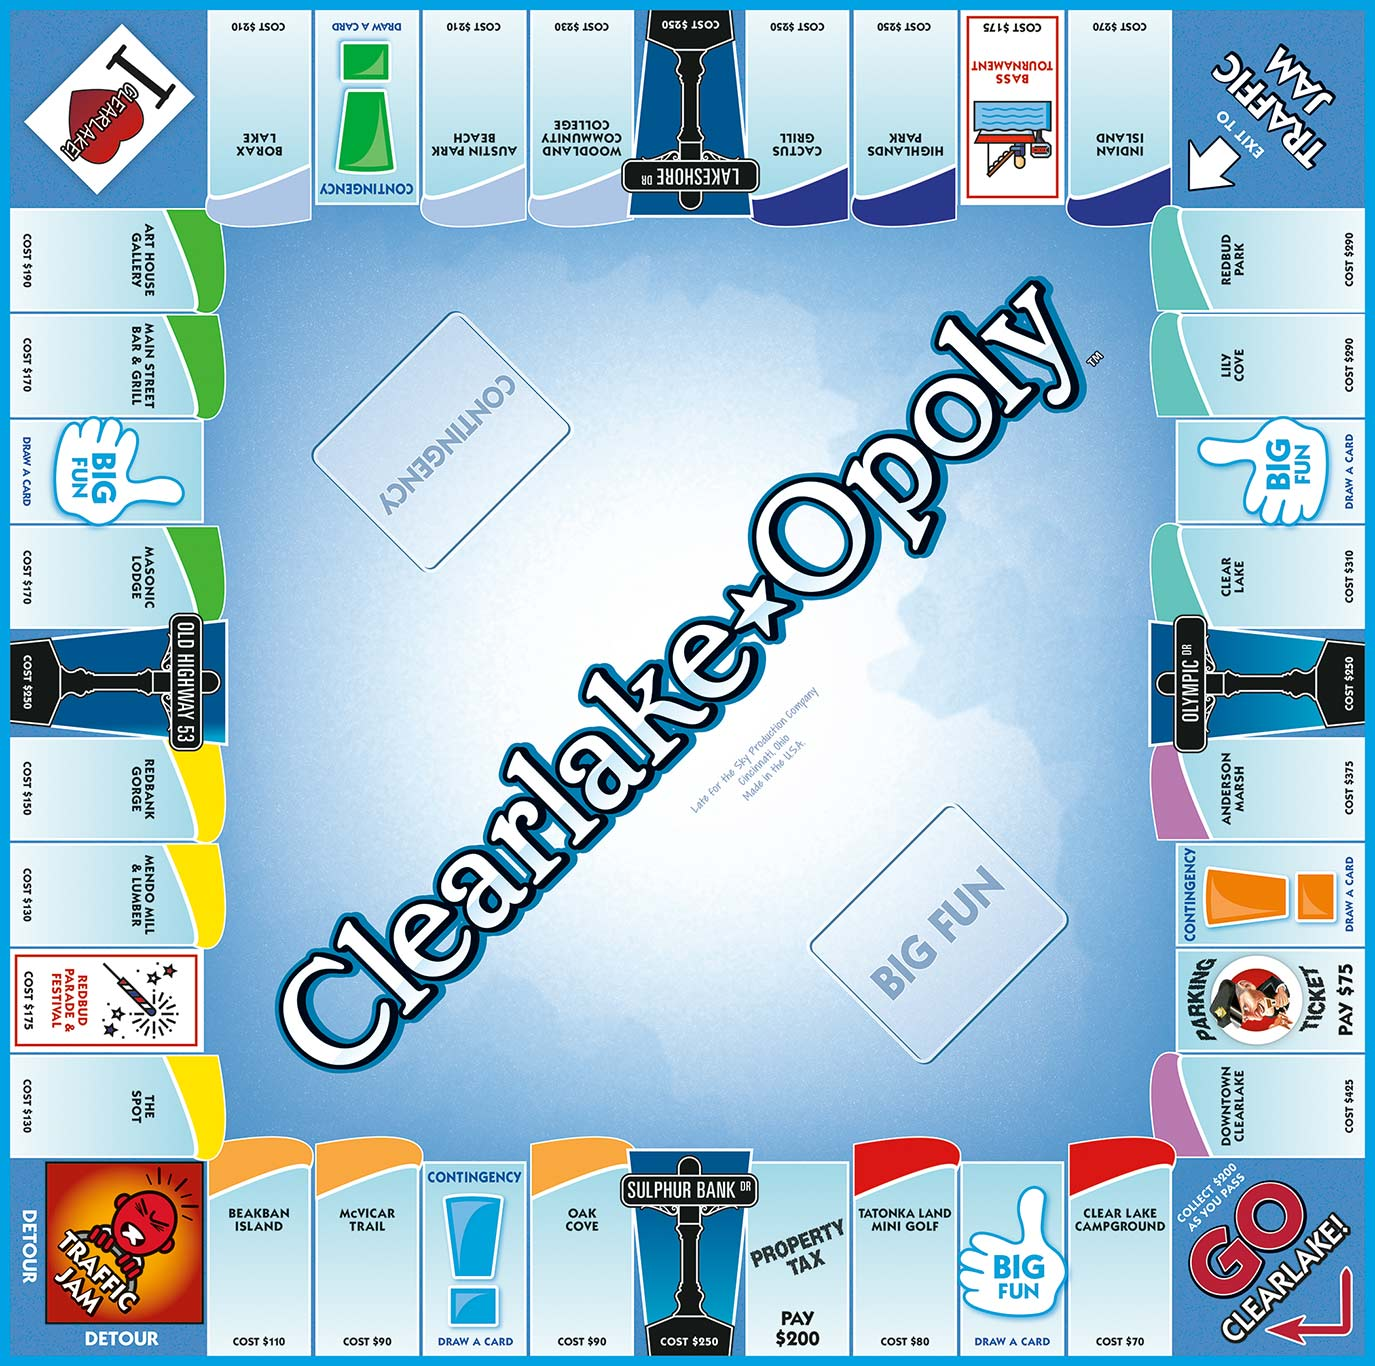 CLEARLAKE-OPOLY Board Game